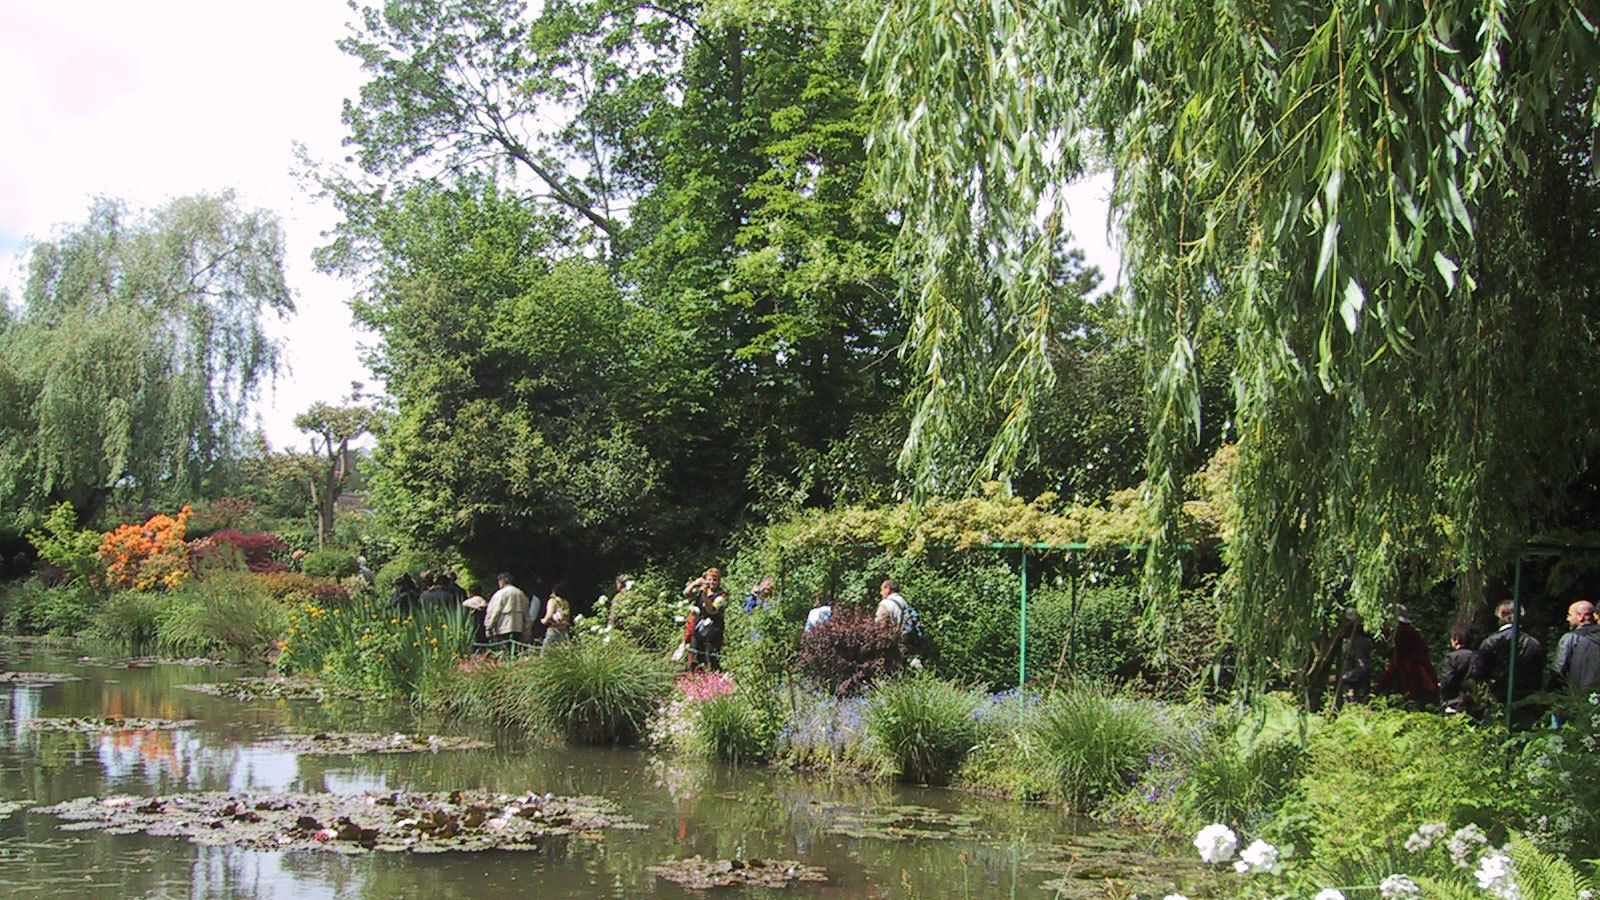 Guests pass a nearby pond within Giverny Village